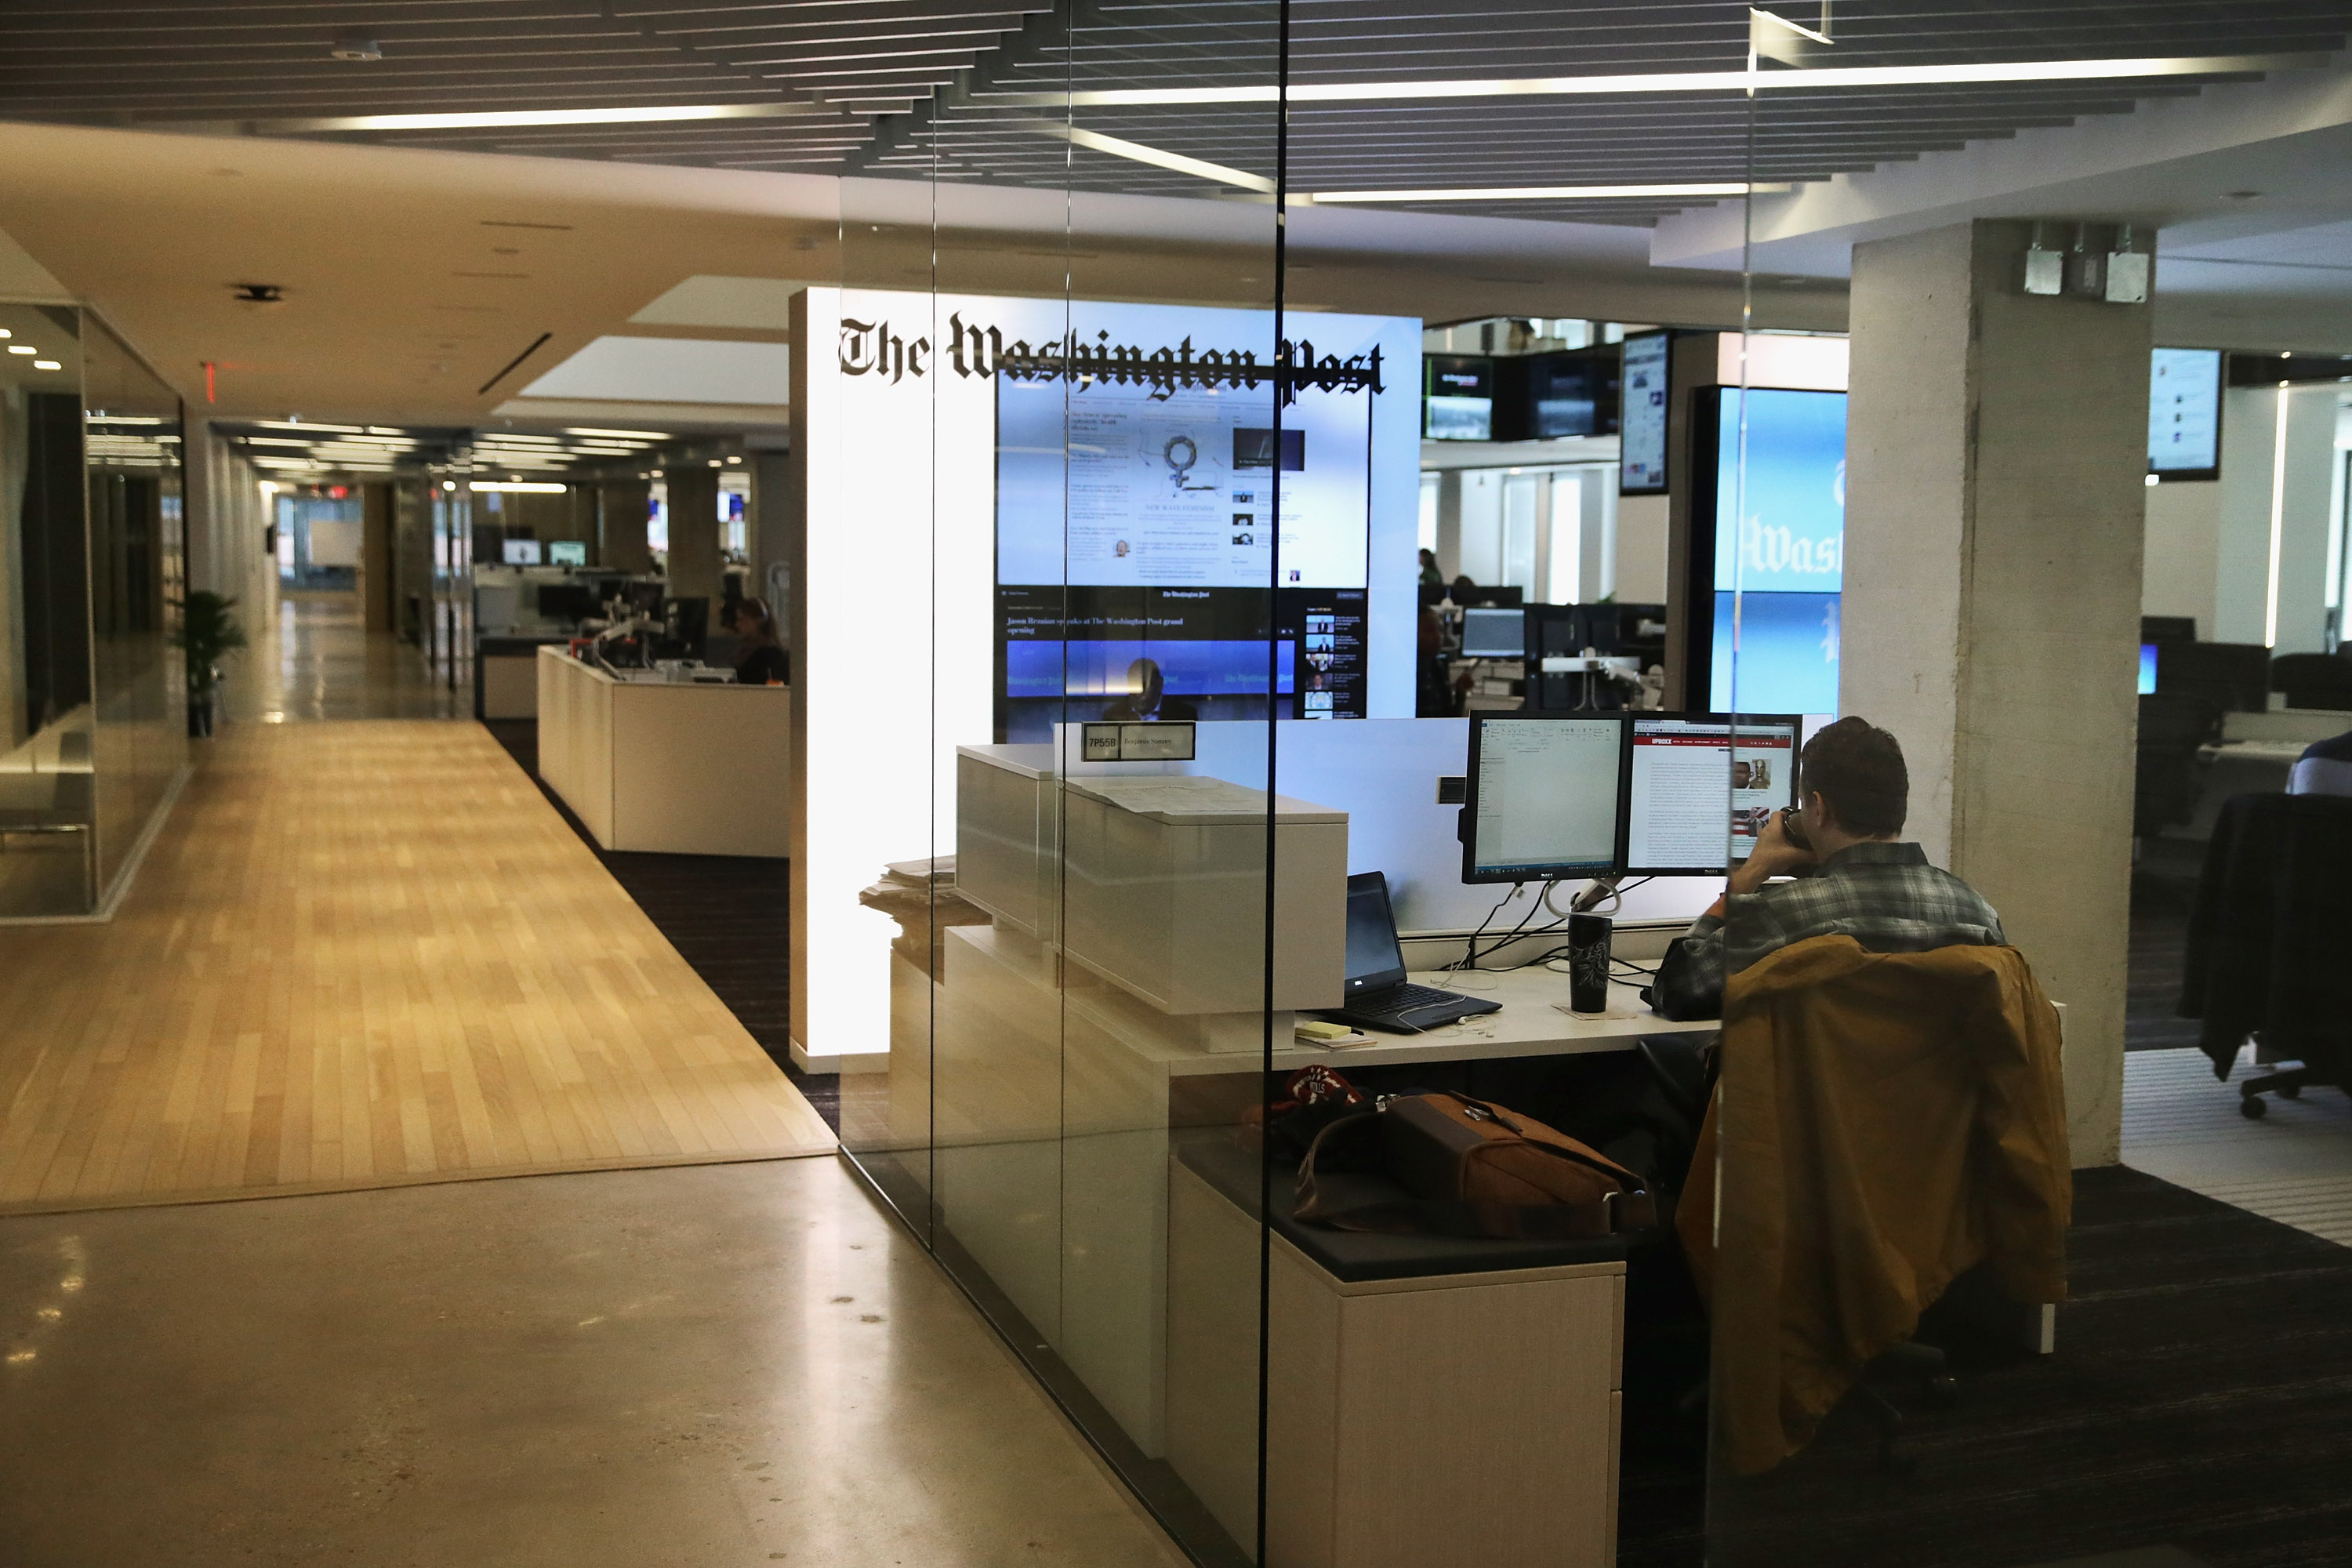 The Washington Post's news room, January 28, 2016 in Washington, DC. (Chip Somodevilla/Getty Images)